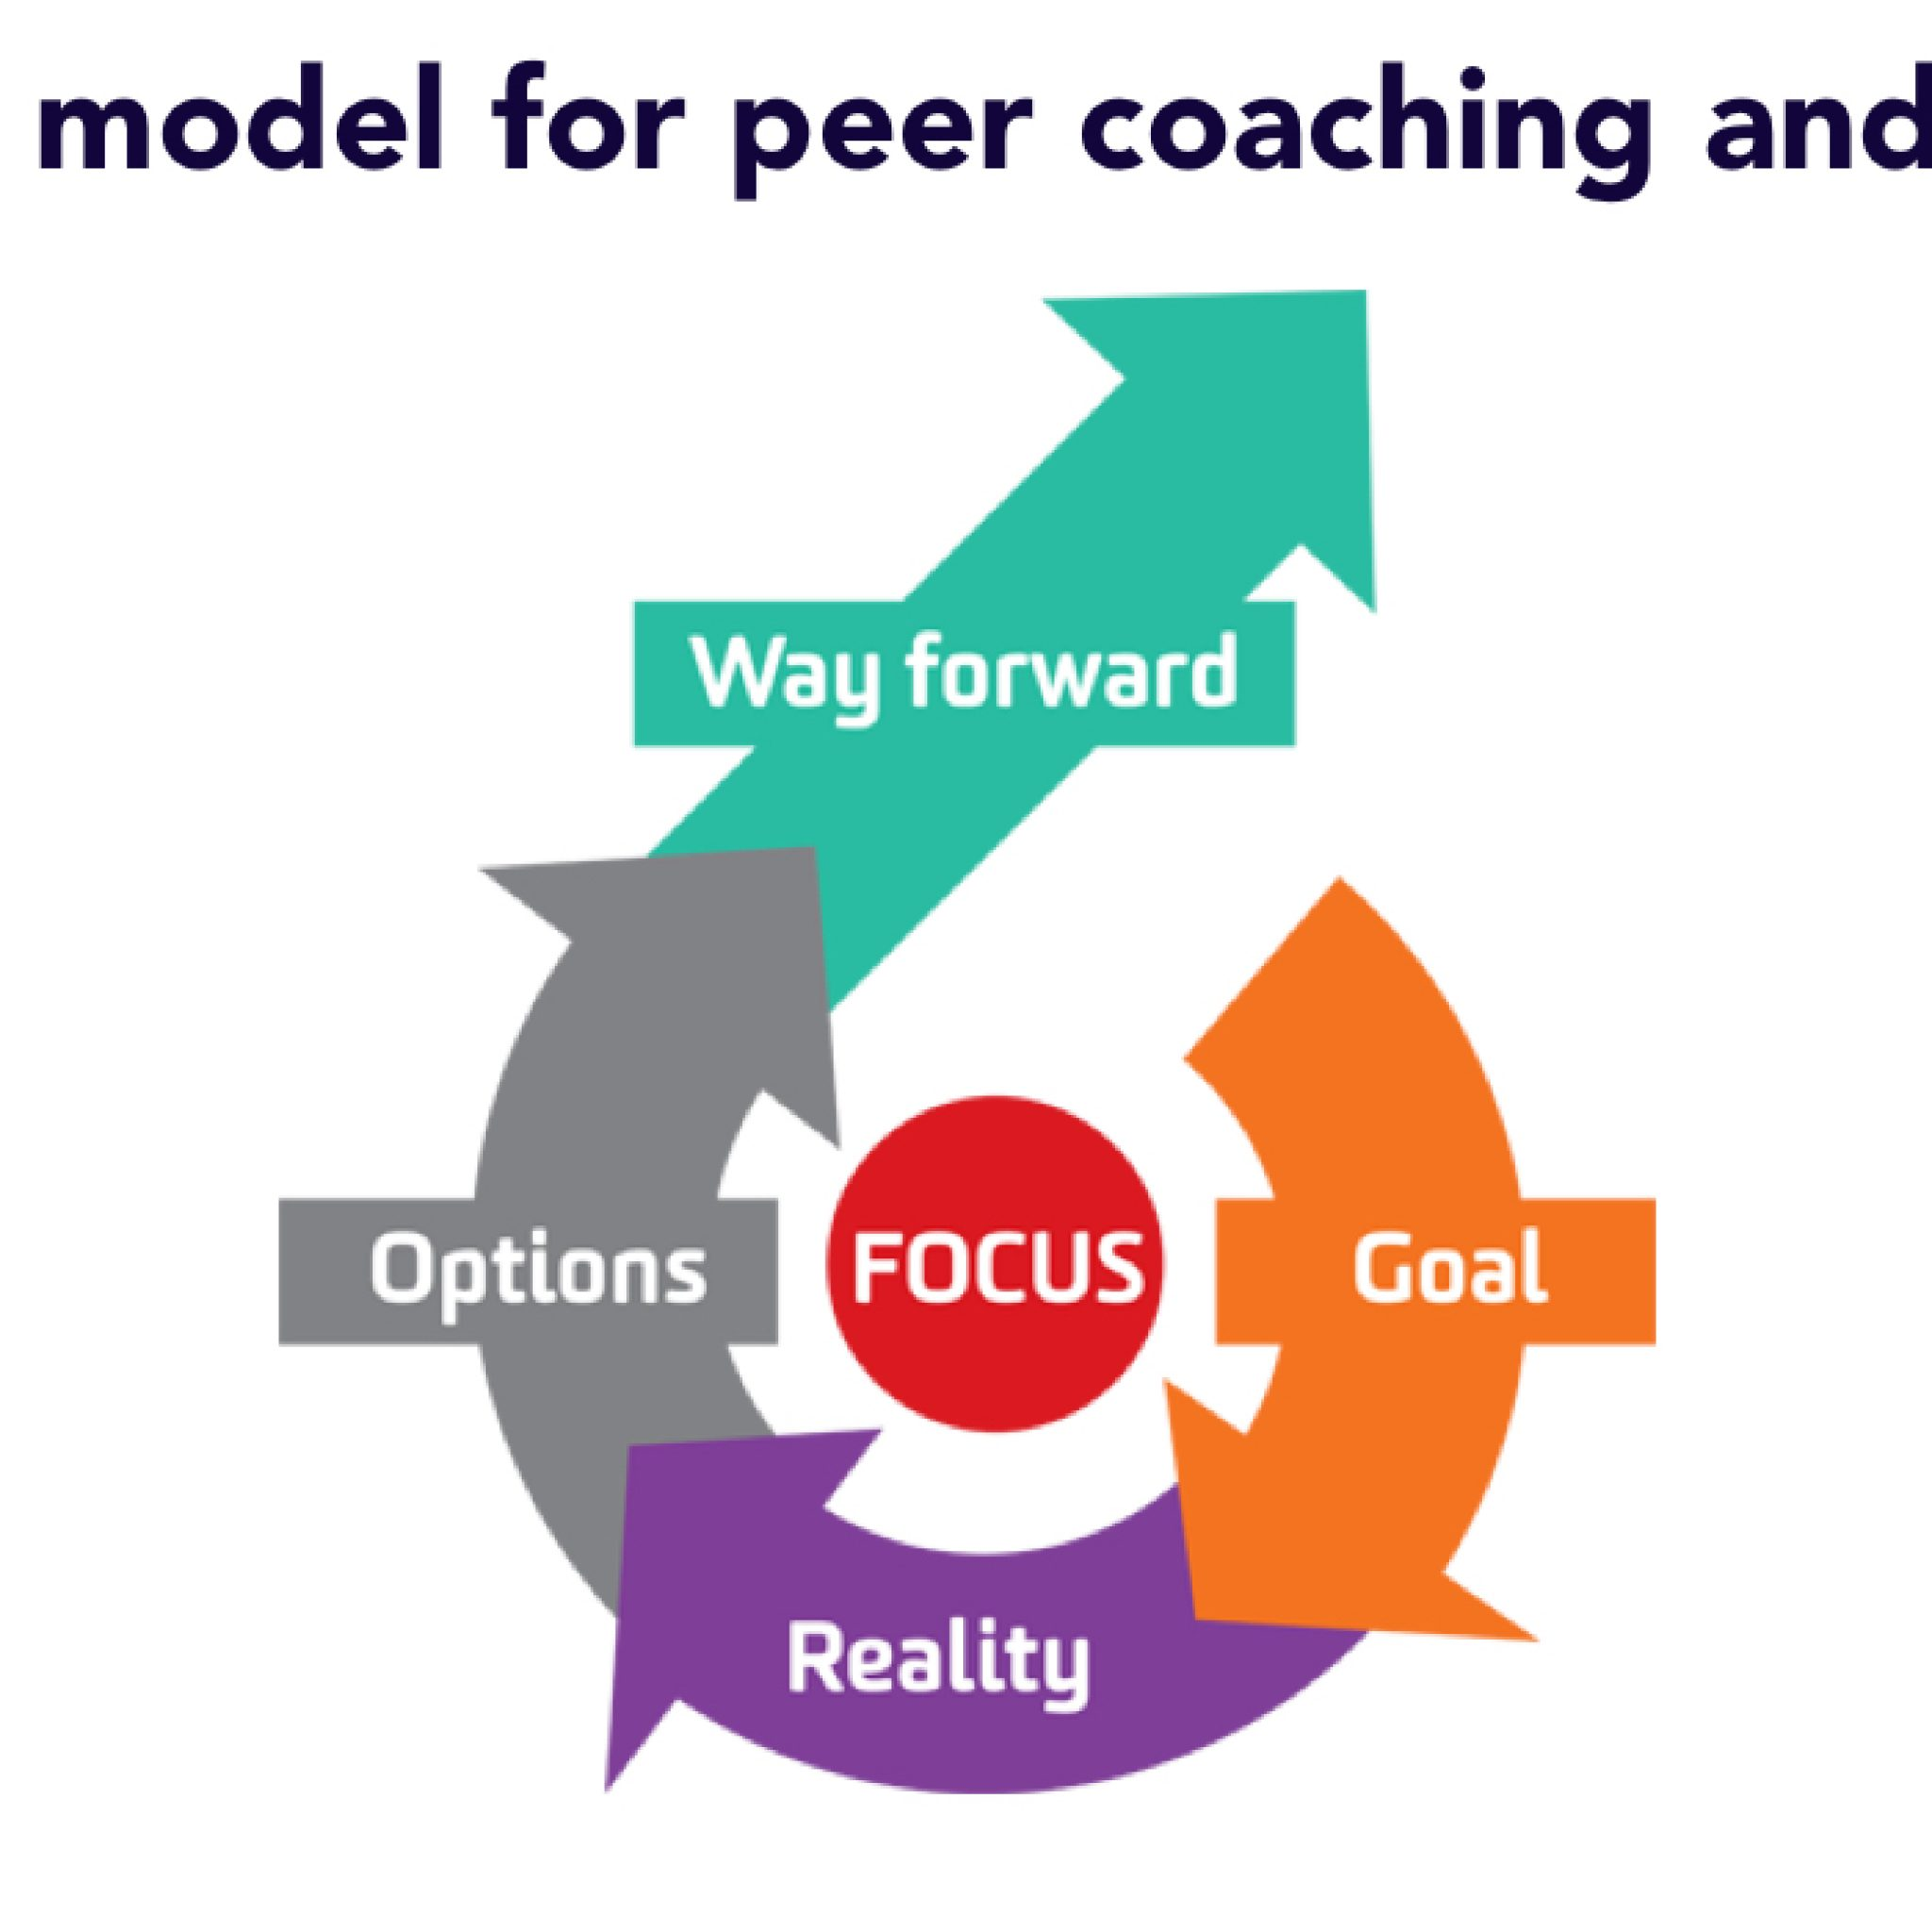 The GROW model for peer coaching and mentoring